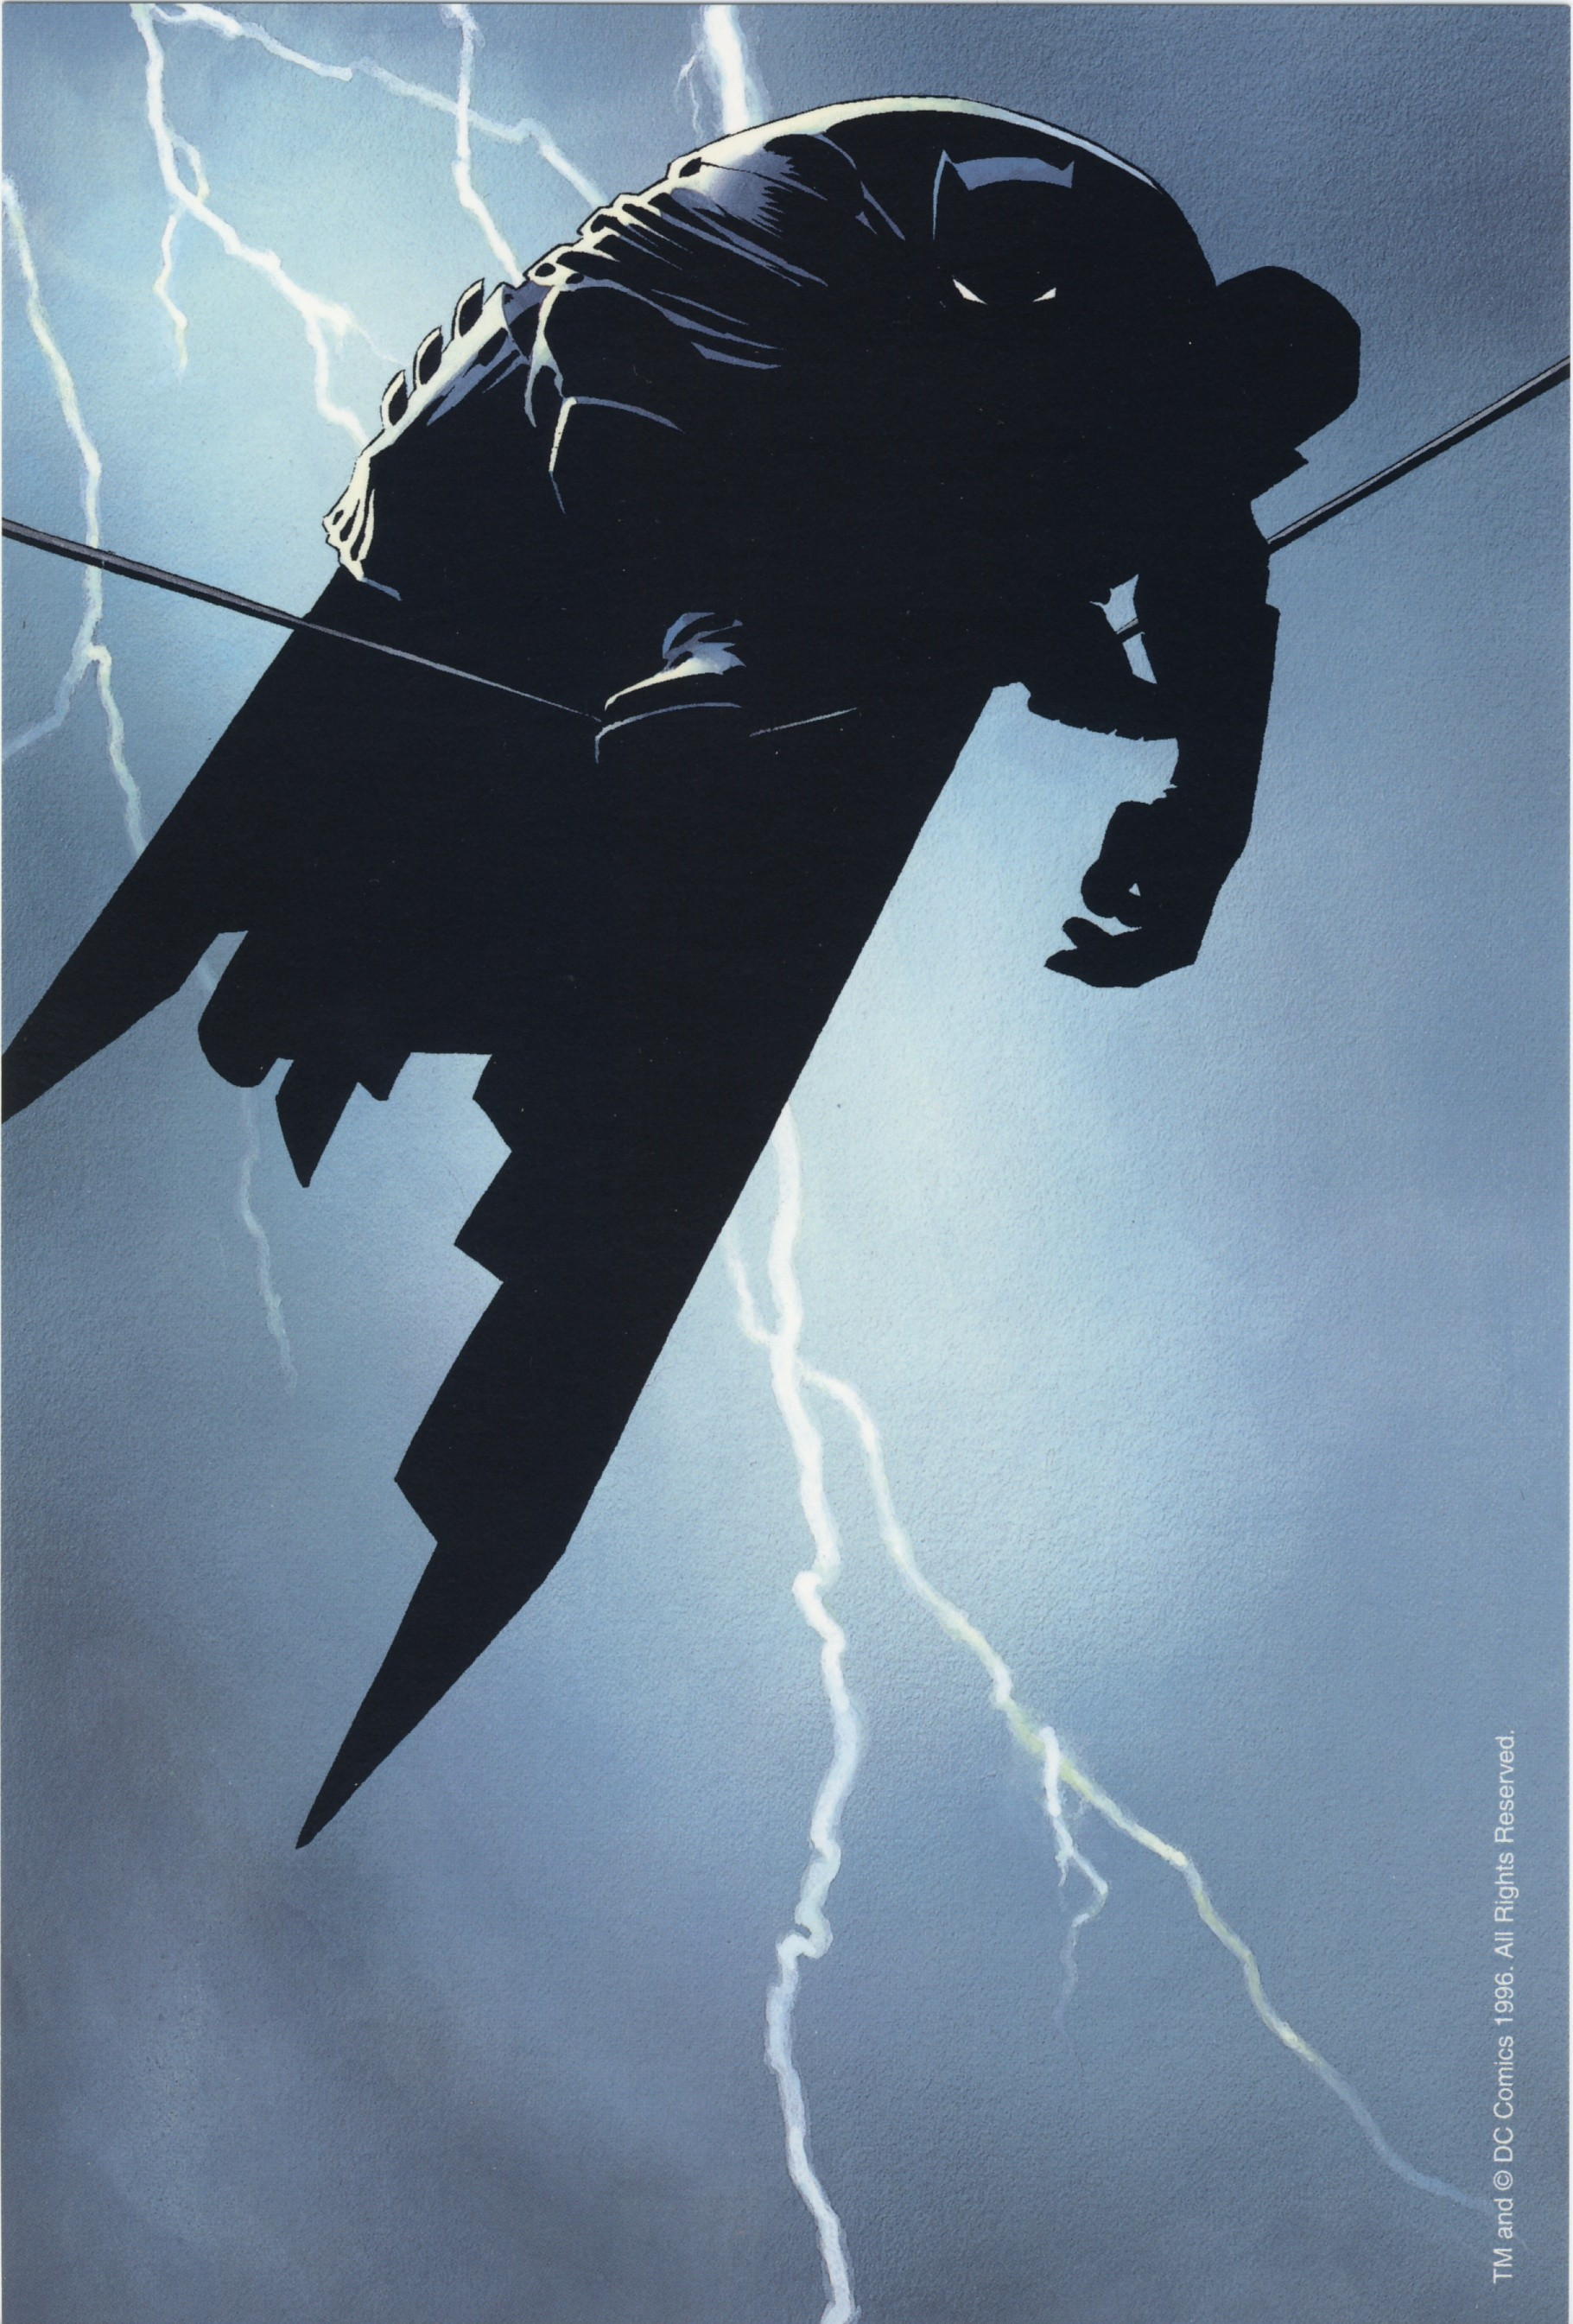 Dark Knight – Frank Miller – this poster got me back into batman after the  terrible movies came out.